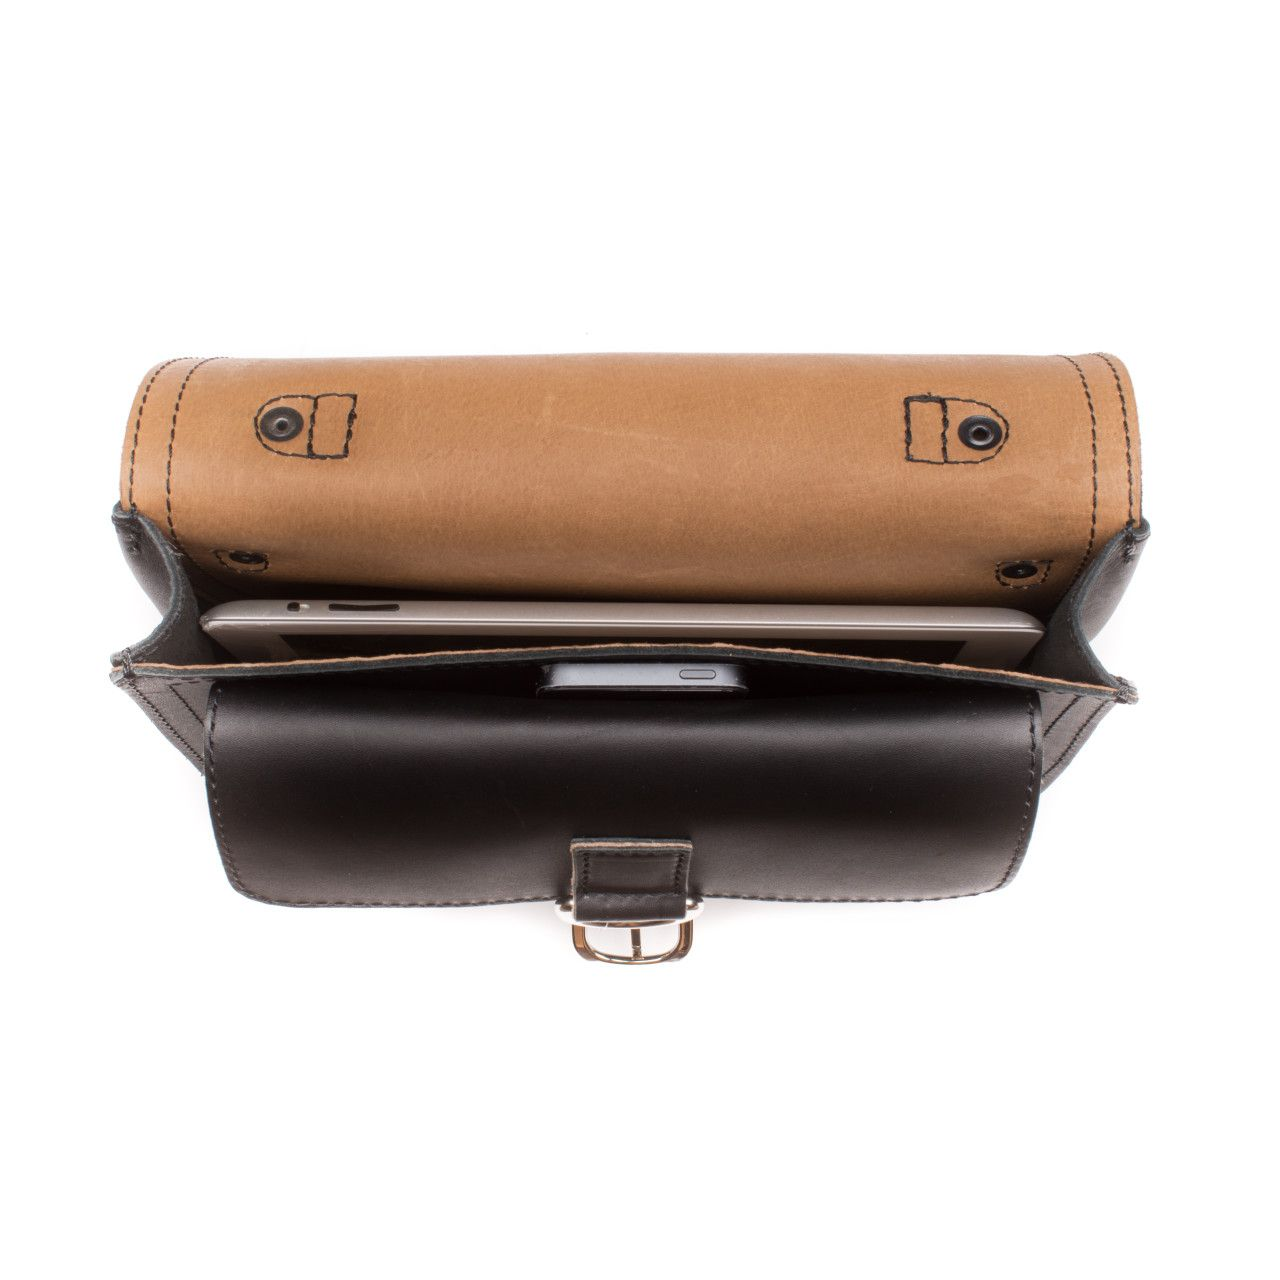 Macbook and iphone in the inside of the leather tablet messenger bag in black leather